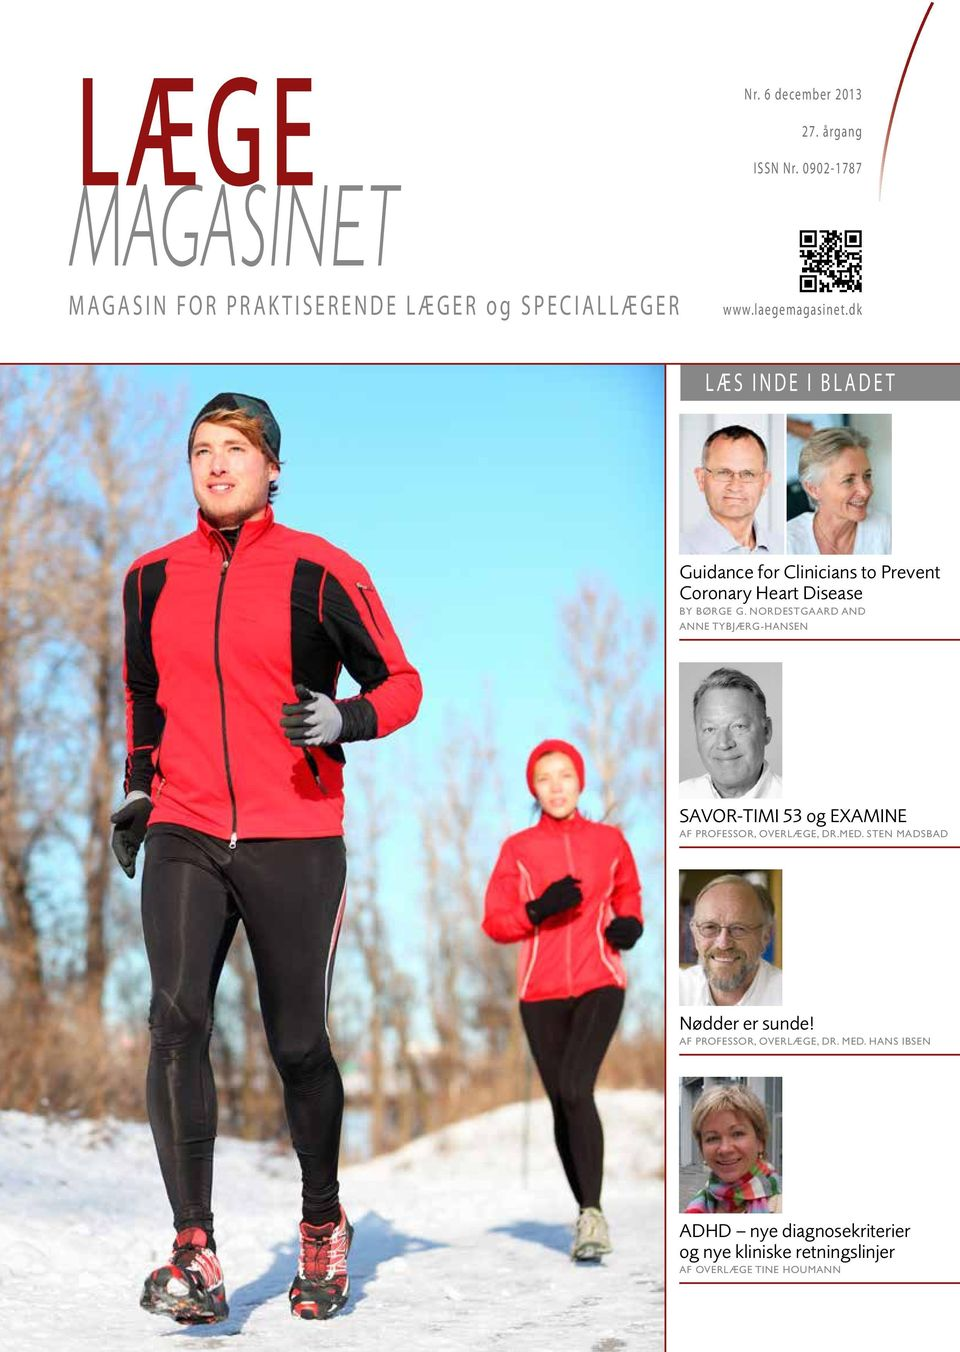 dk læs inde i bladet Guidance for Clinicians to Prevent Coronary Heart Disease By Børge G.